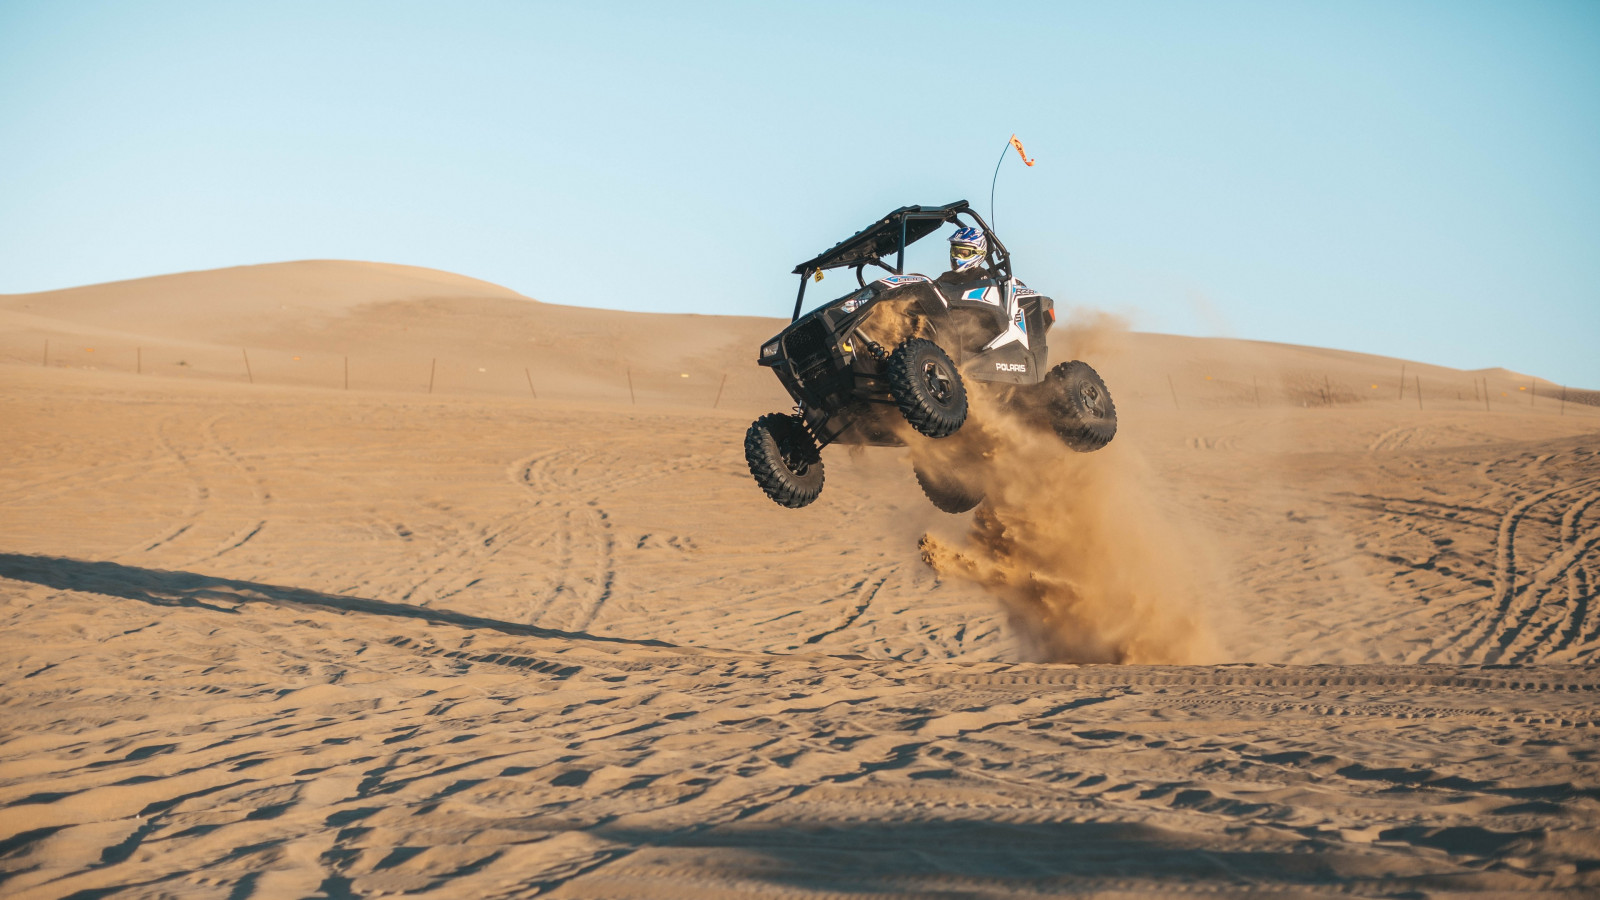 With ATV on the the sand dunes wallpaper 1600x900